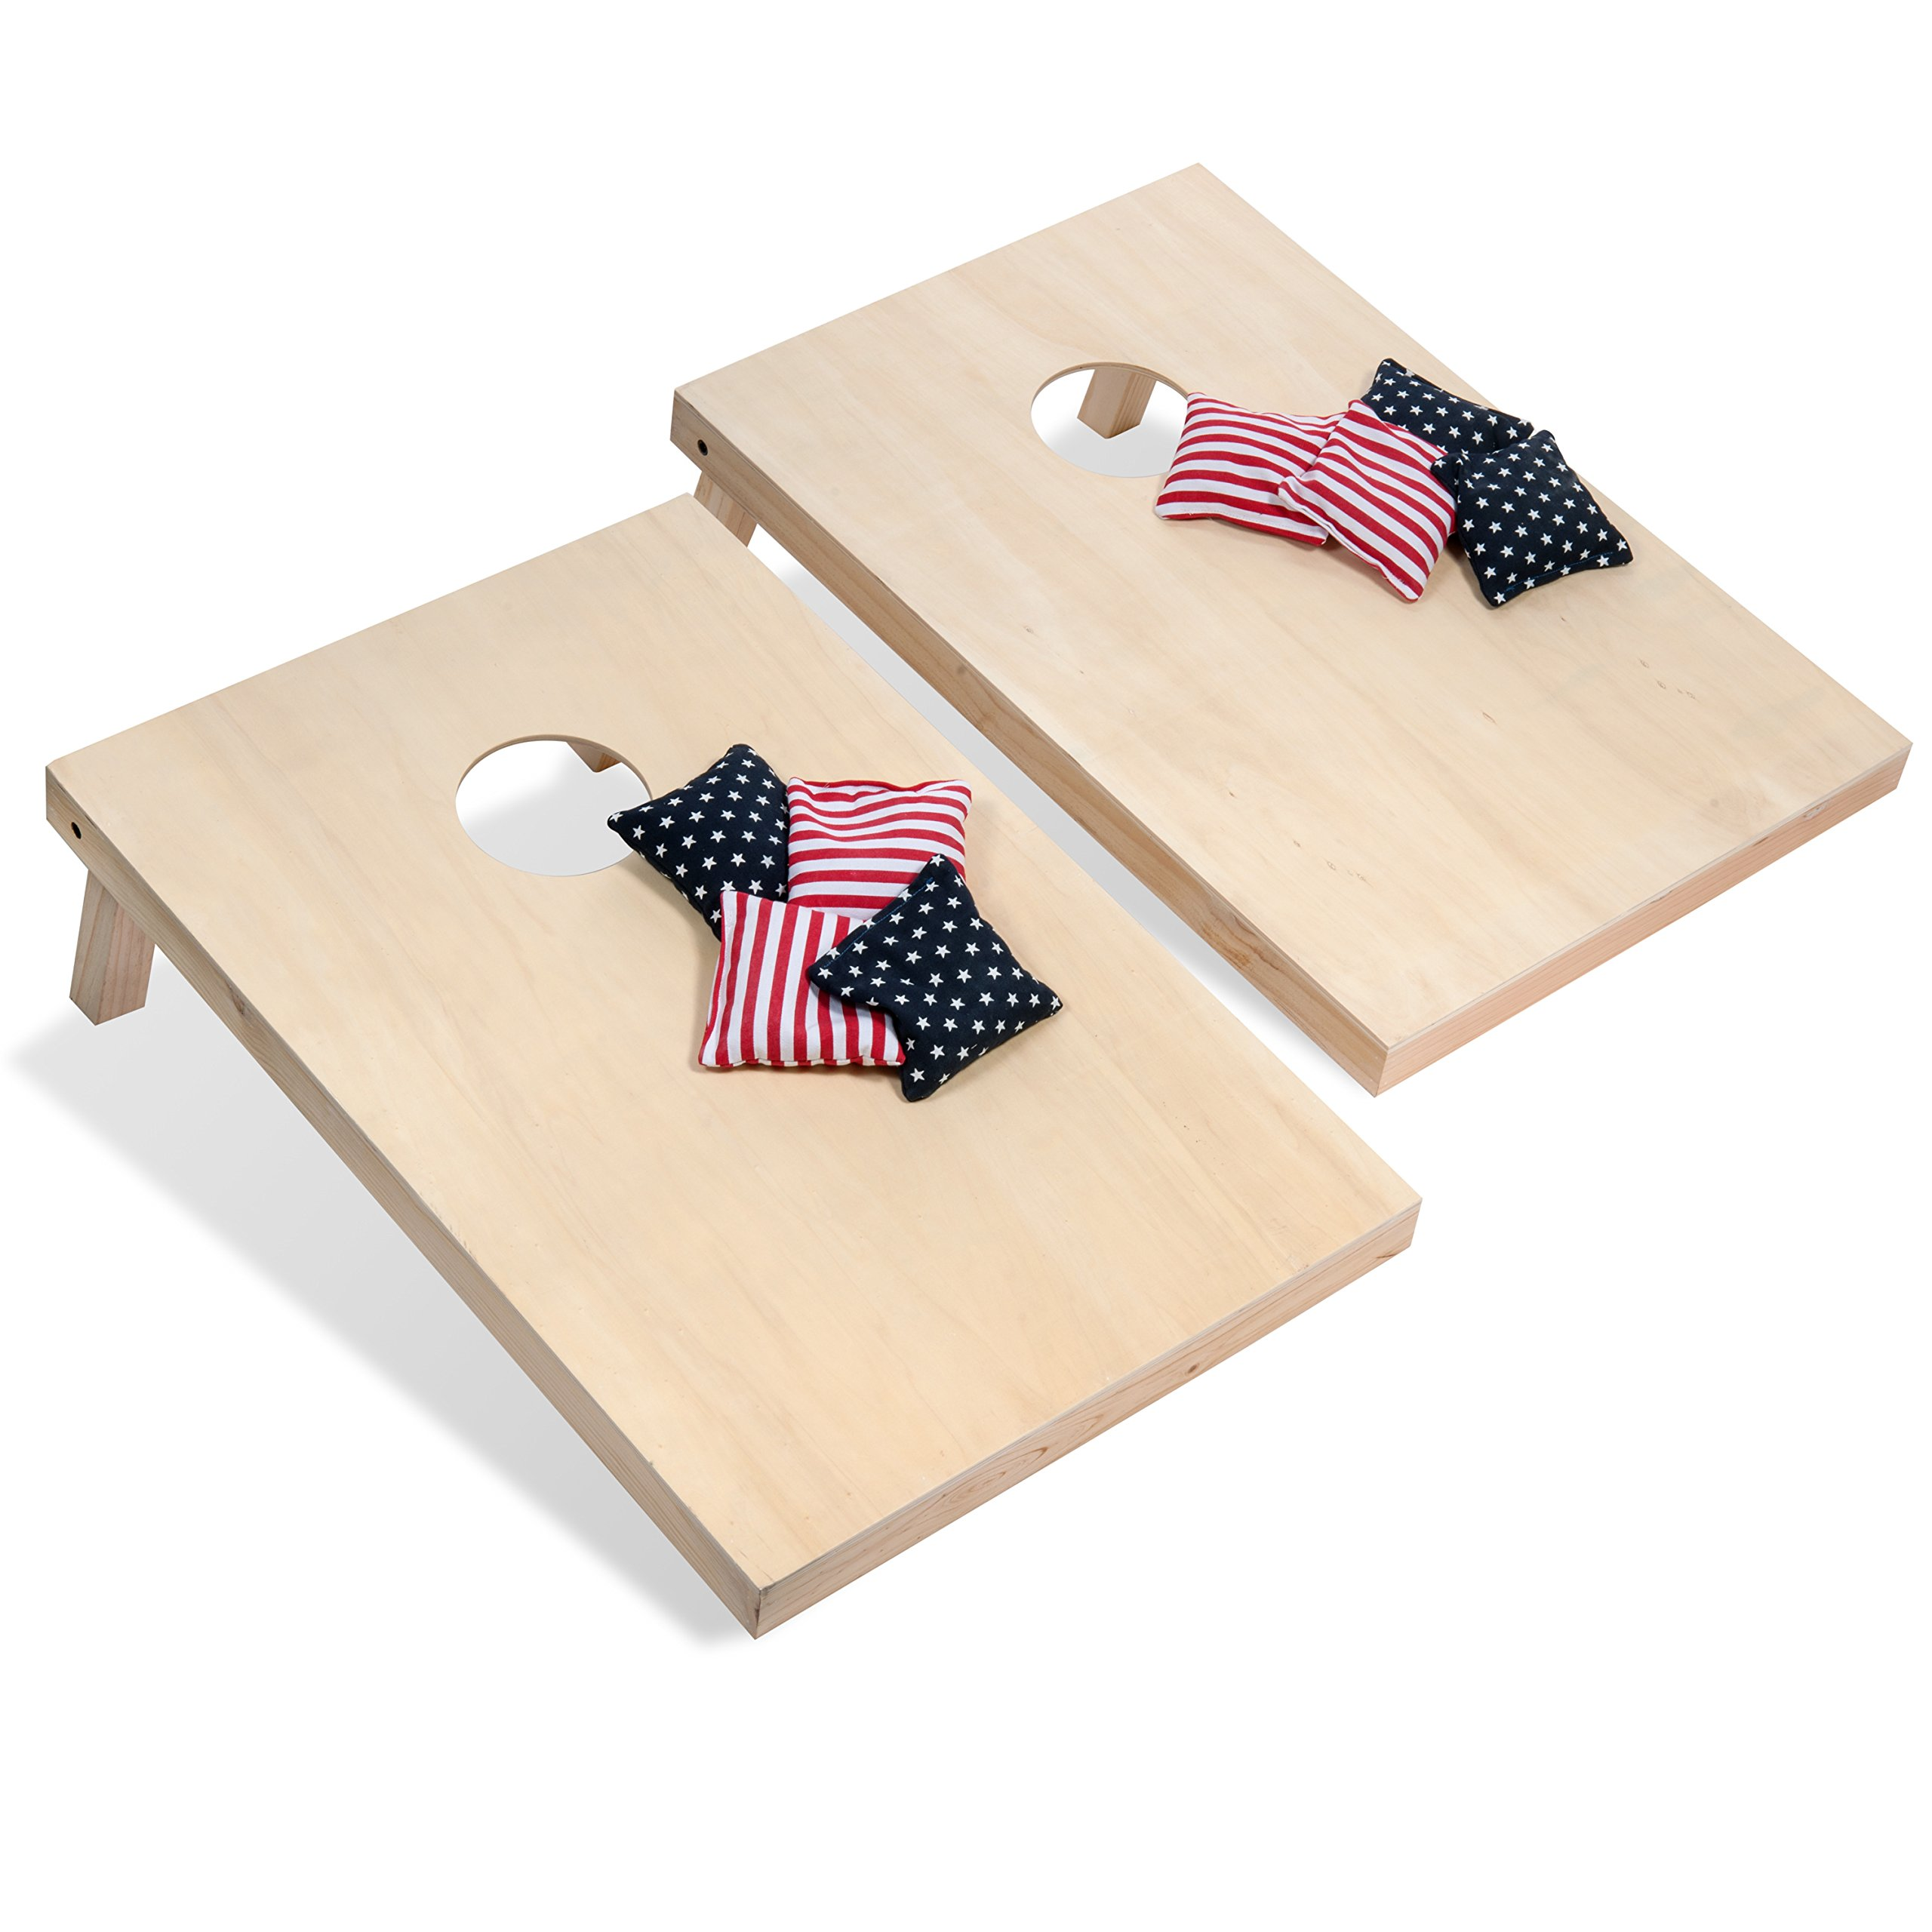 Tailgating Pros Cornhole Boards - 4'x2' & 3'x2' Cornhole Game w/Carrying Case & Set of 8 Corn Hole Bags - 150+ Color Combos! Optional LED Lights by Tailgating Pros (Image #7)